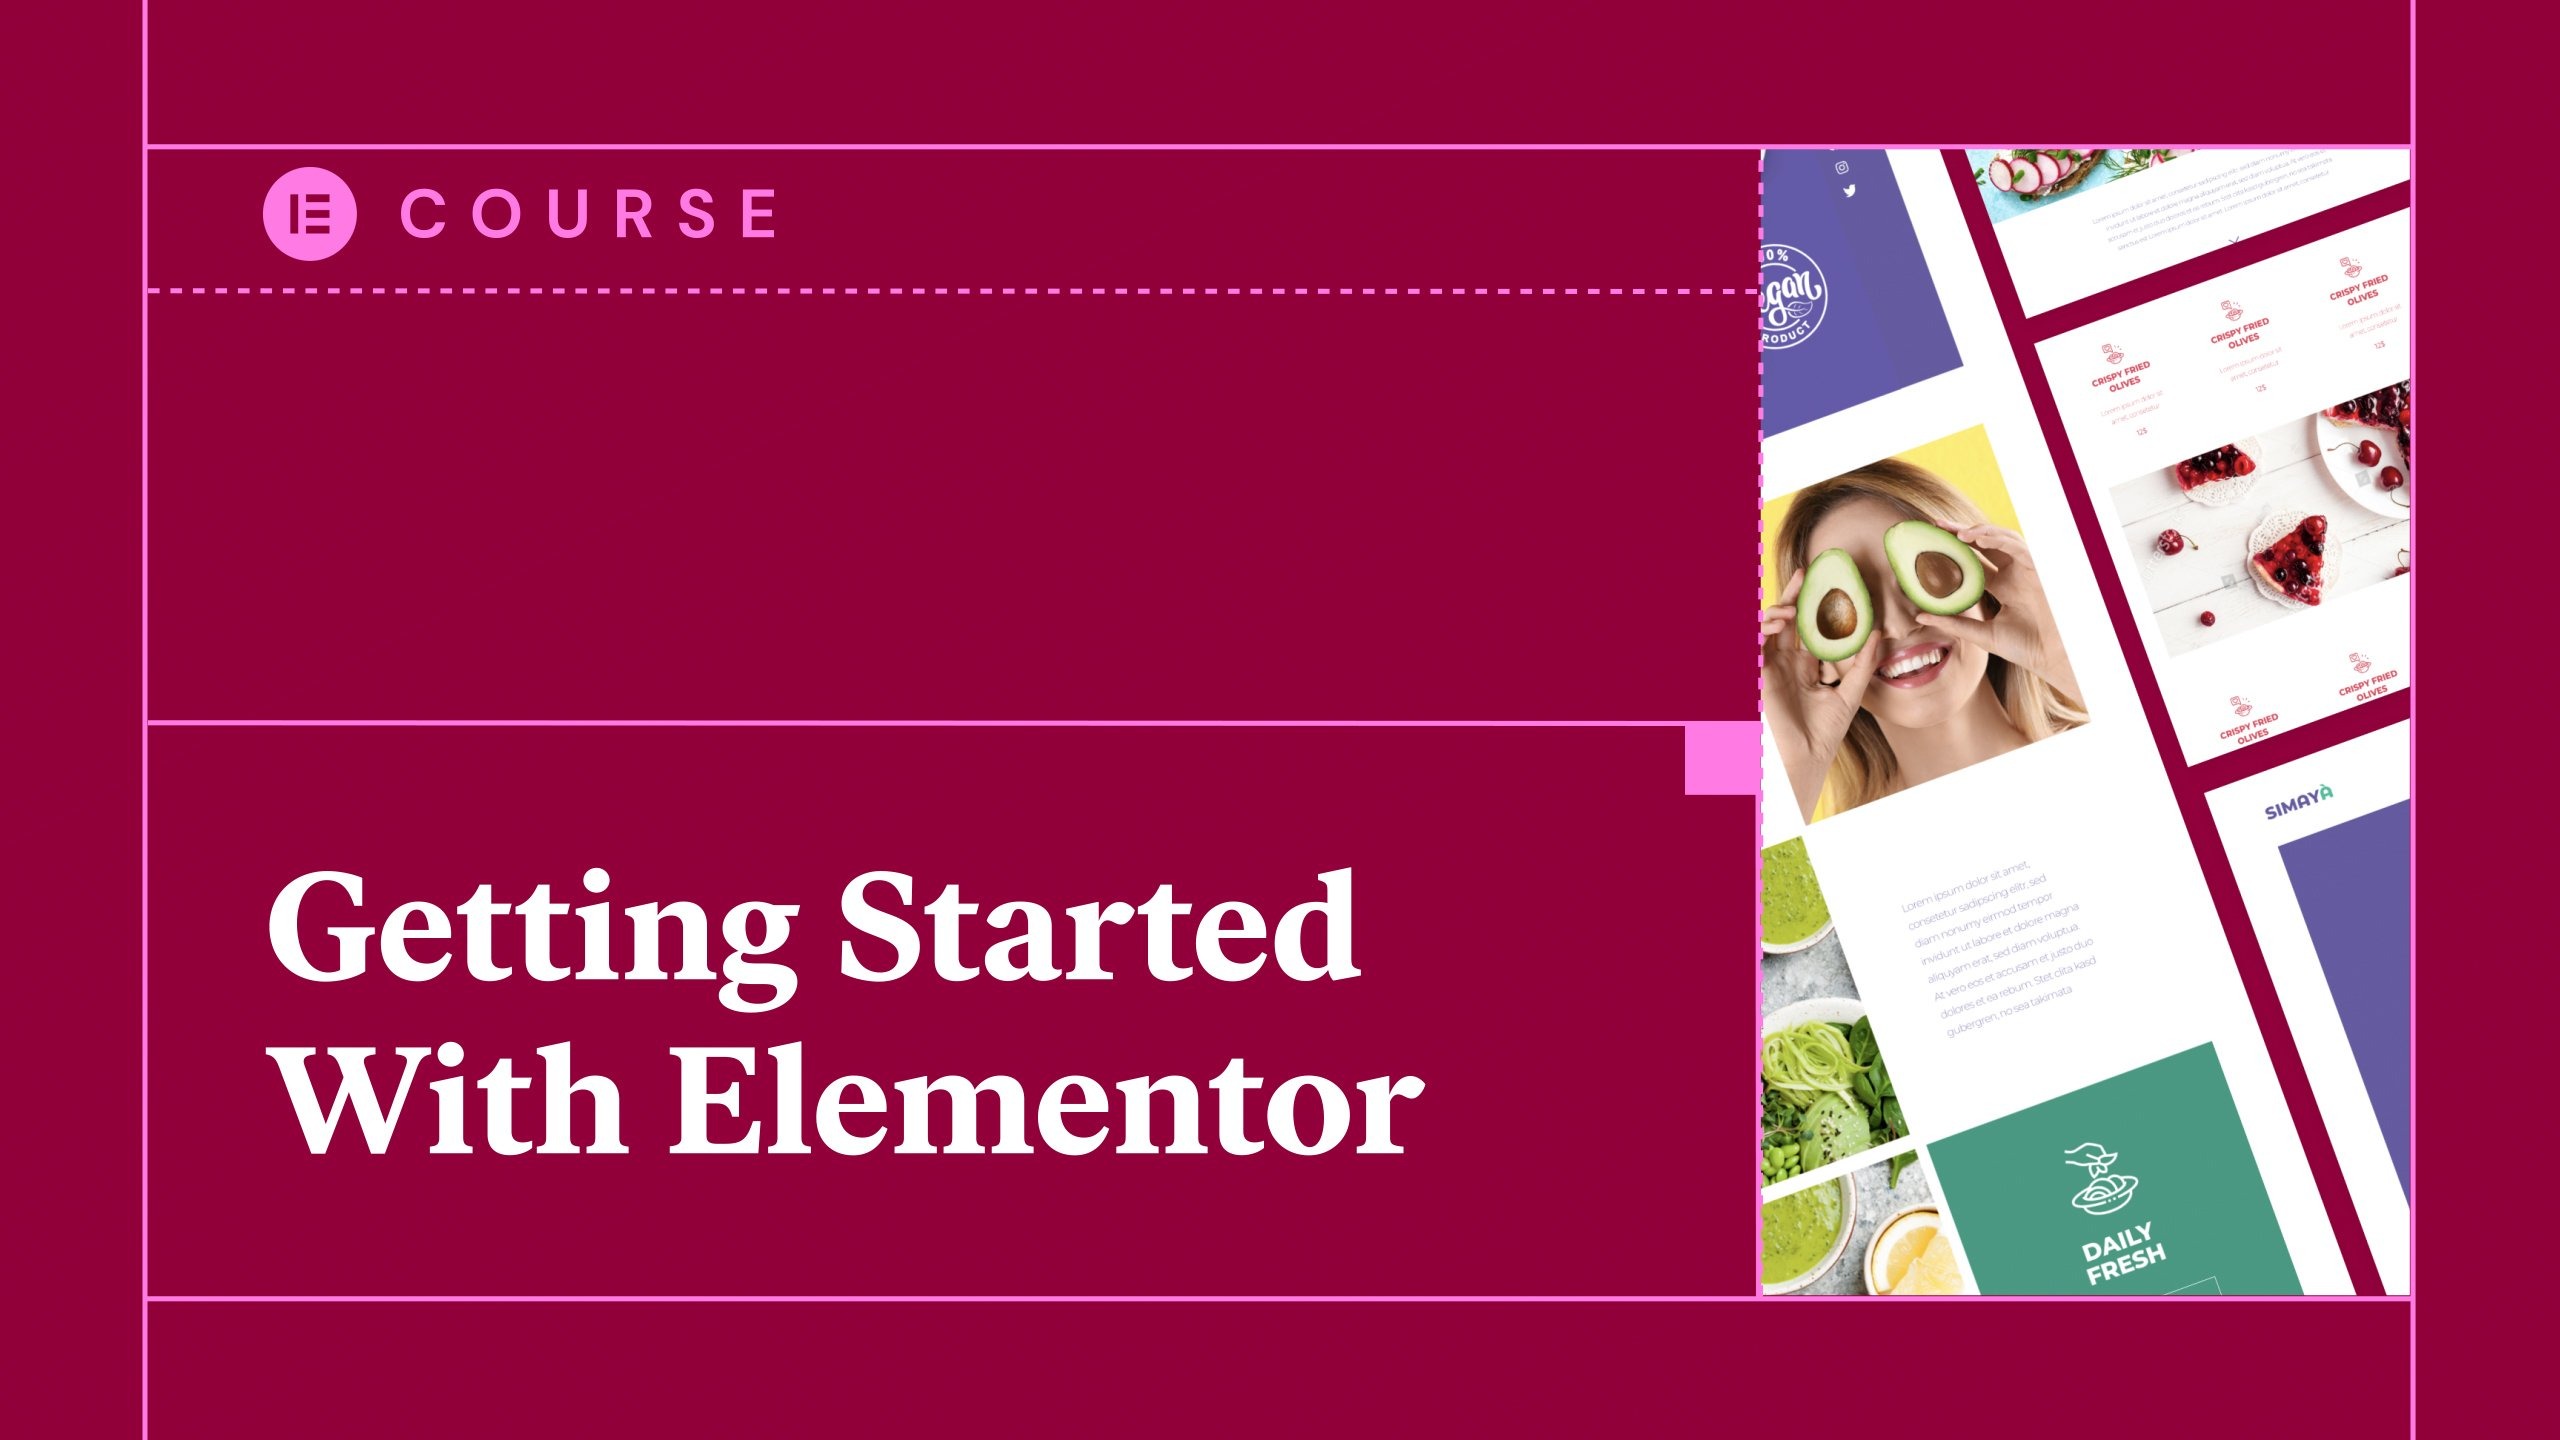 Getting-Started-course